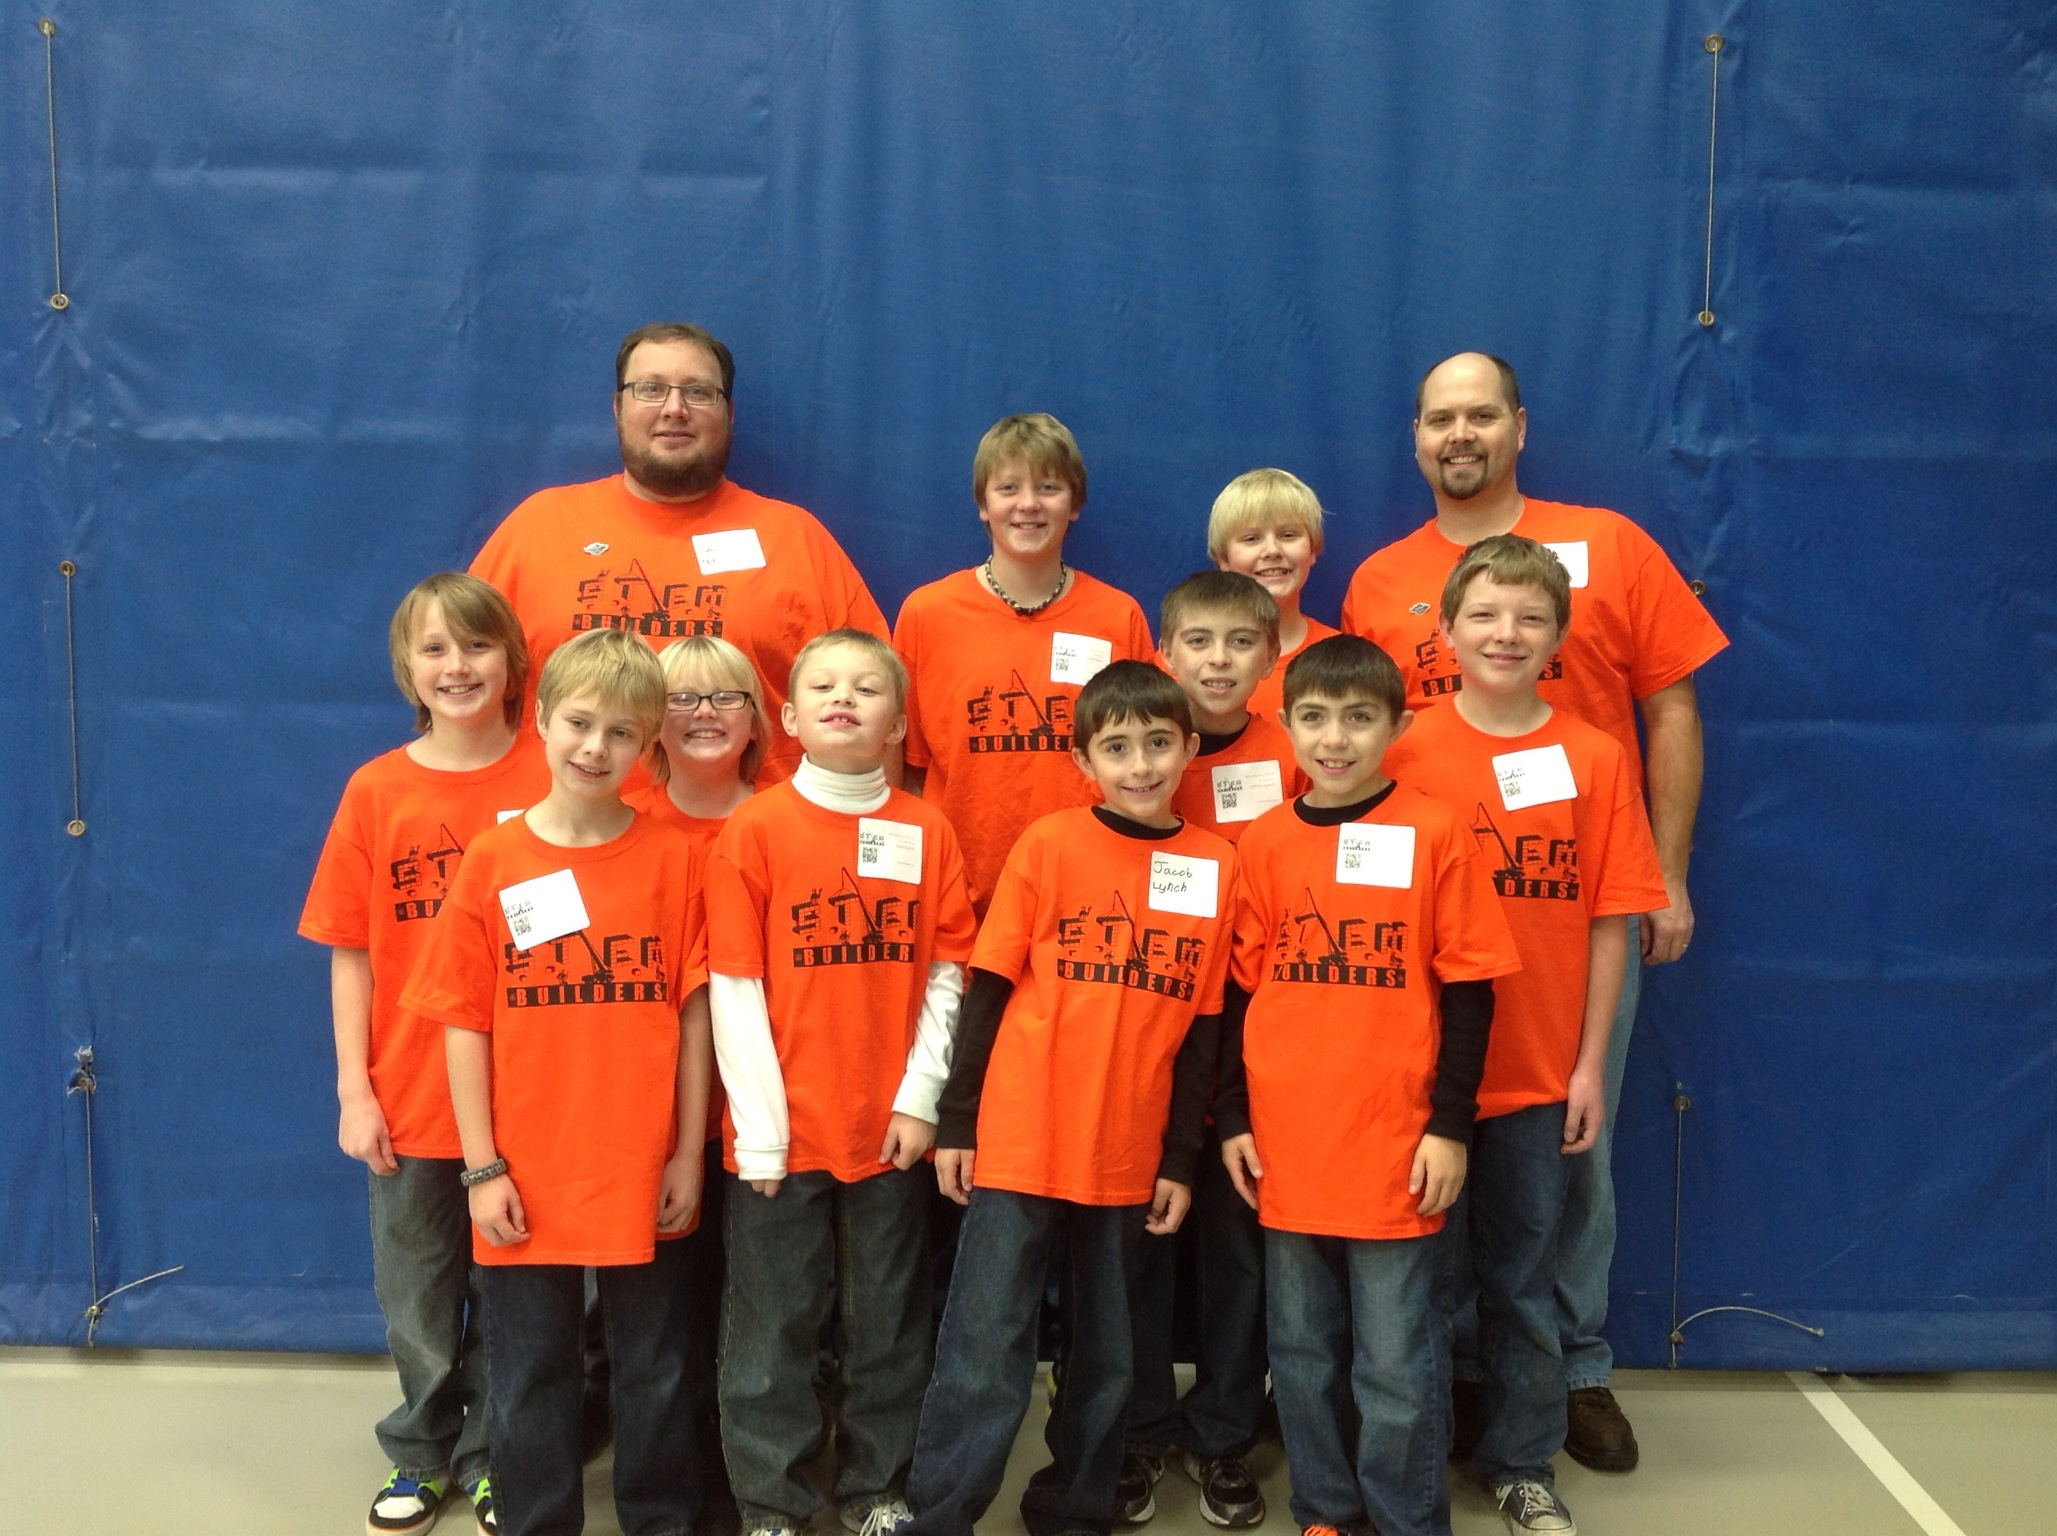 Custom t shirts for team stem builders first lego league for Builders first